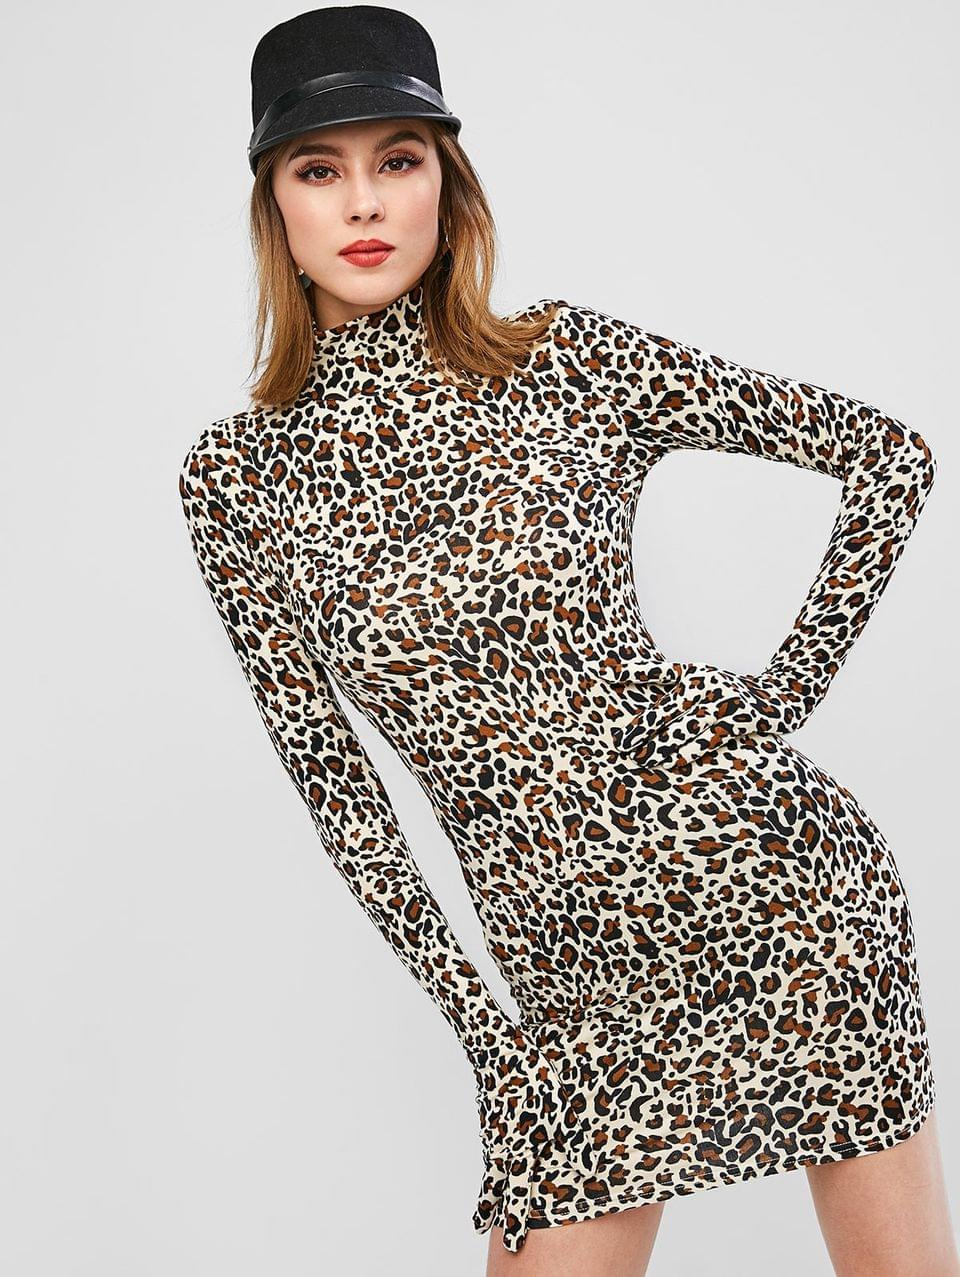 Women's Leopard Print Glove Sleeves Bodycon Dress - Leopard S